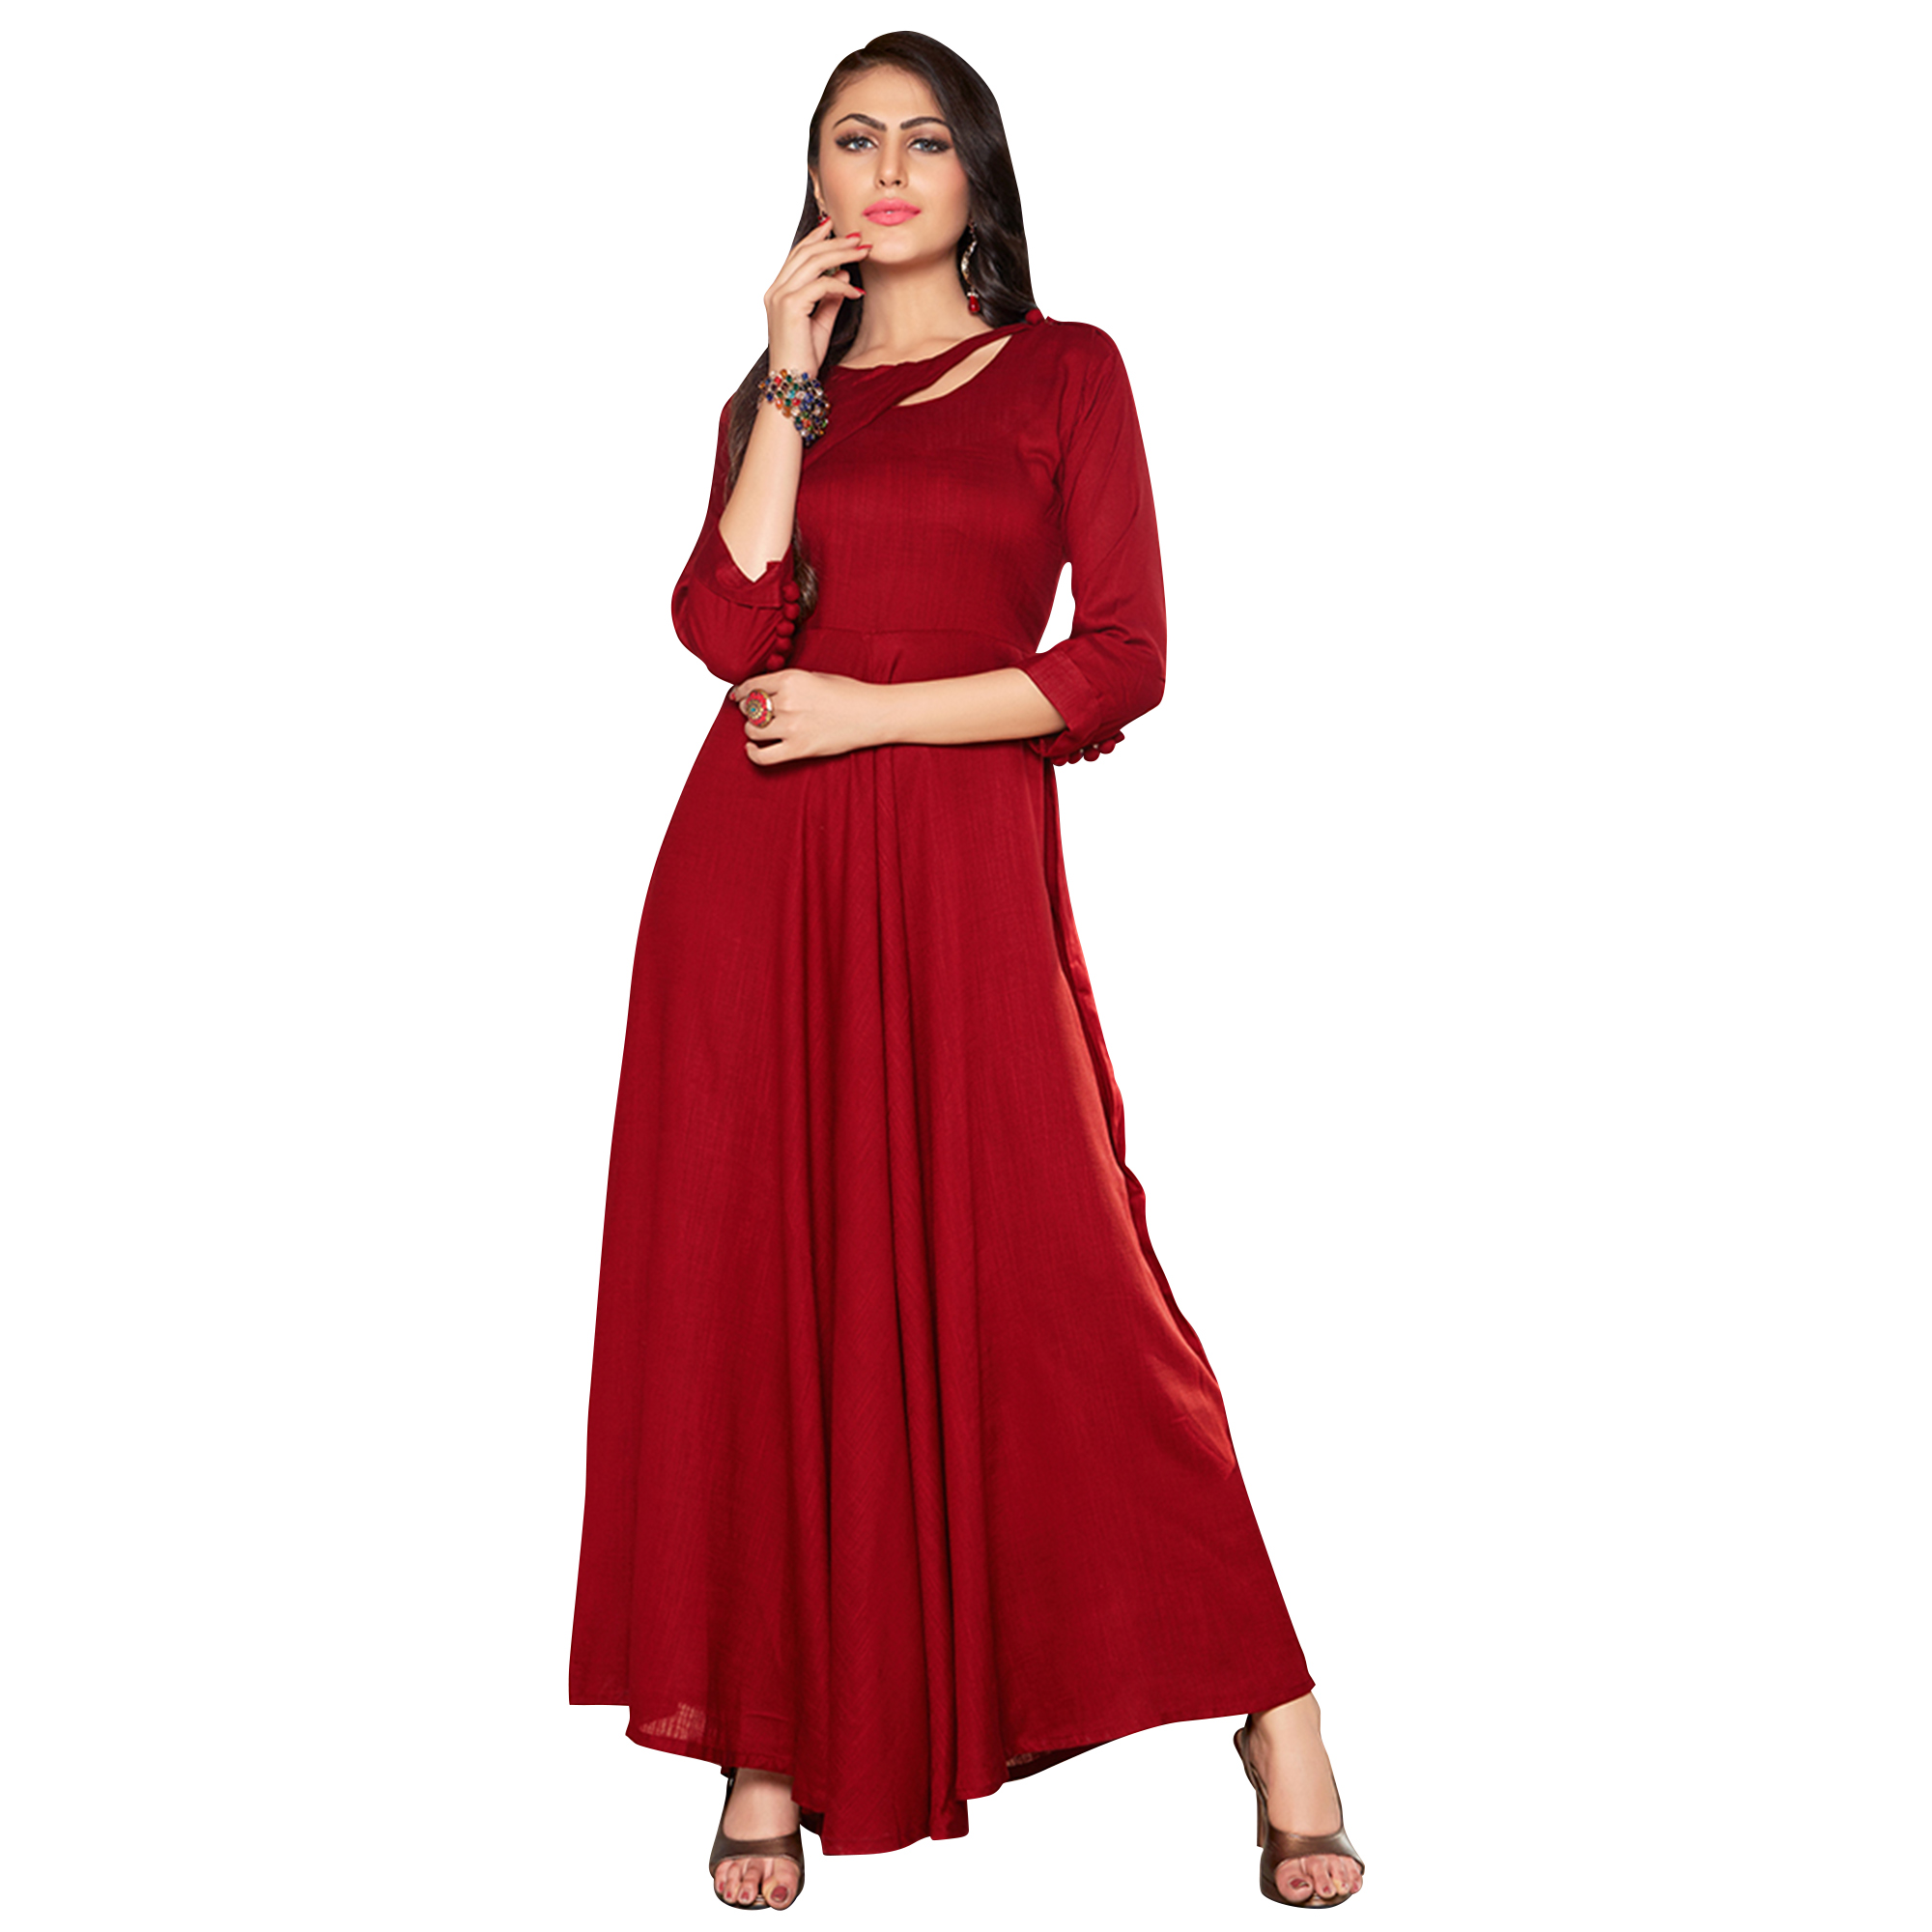 Glowing Red Colored Printed Partywear Rayon Cotton Long Kurti